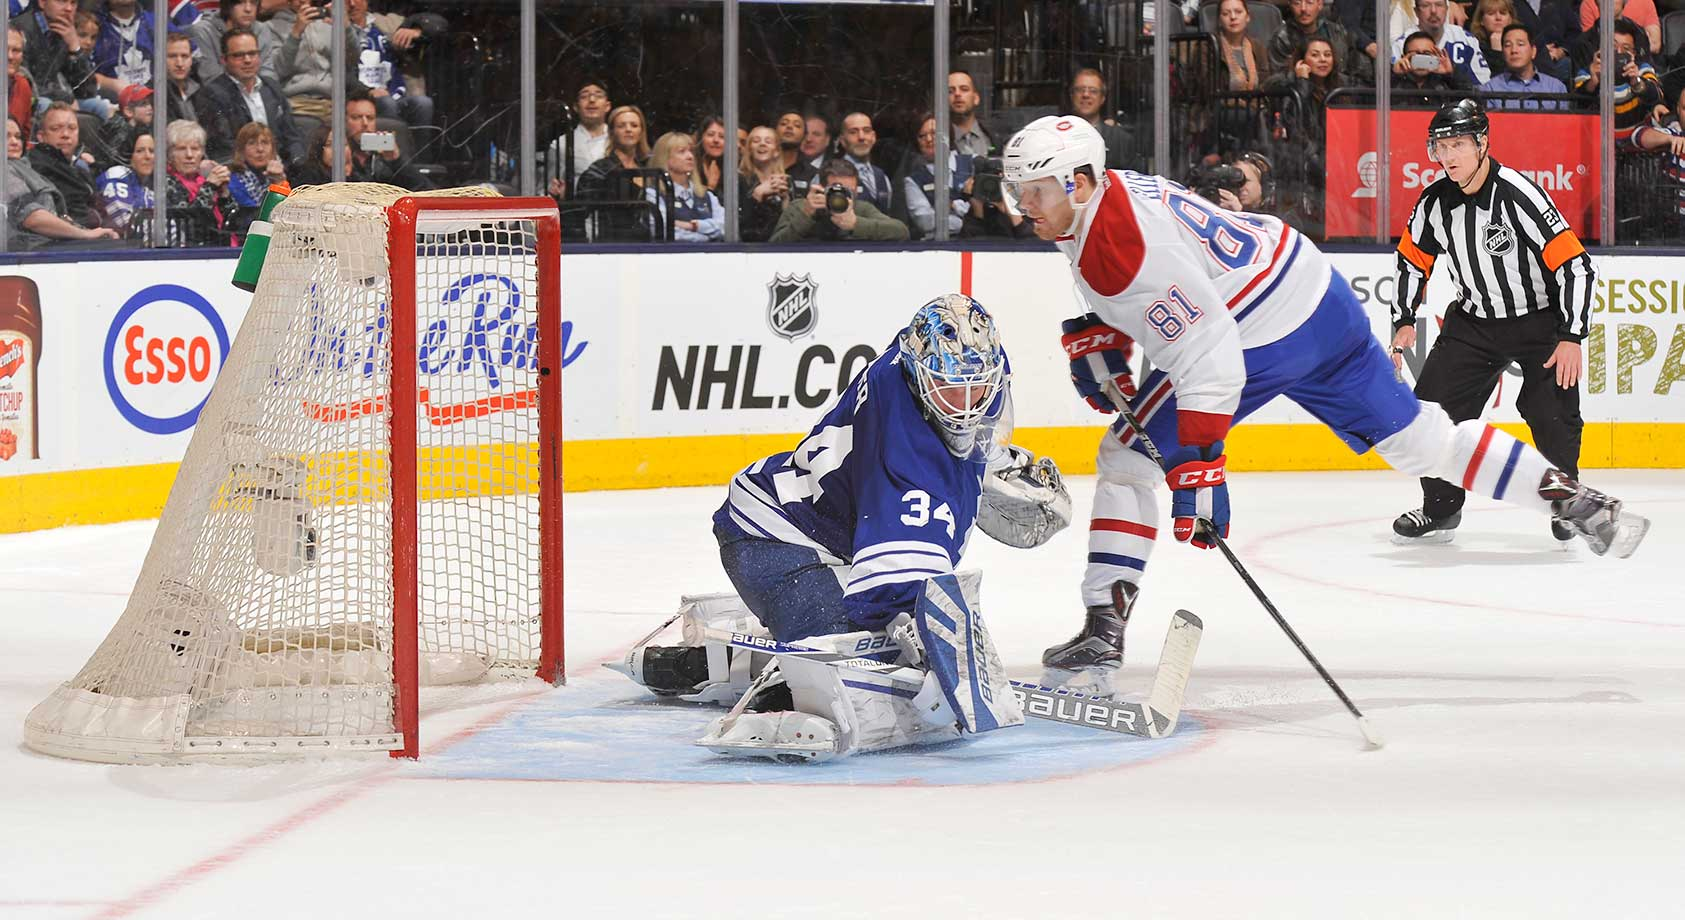 Lars Eller of the Montreal Canadiens scores the game-winning goal in the shootout on James Reimer of the Toronto Maple Leafs at Air Canada Centre in Ontario.